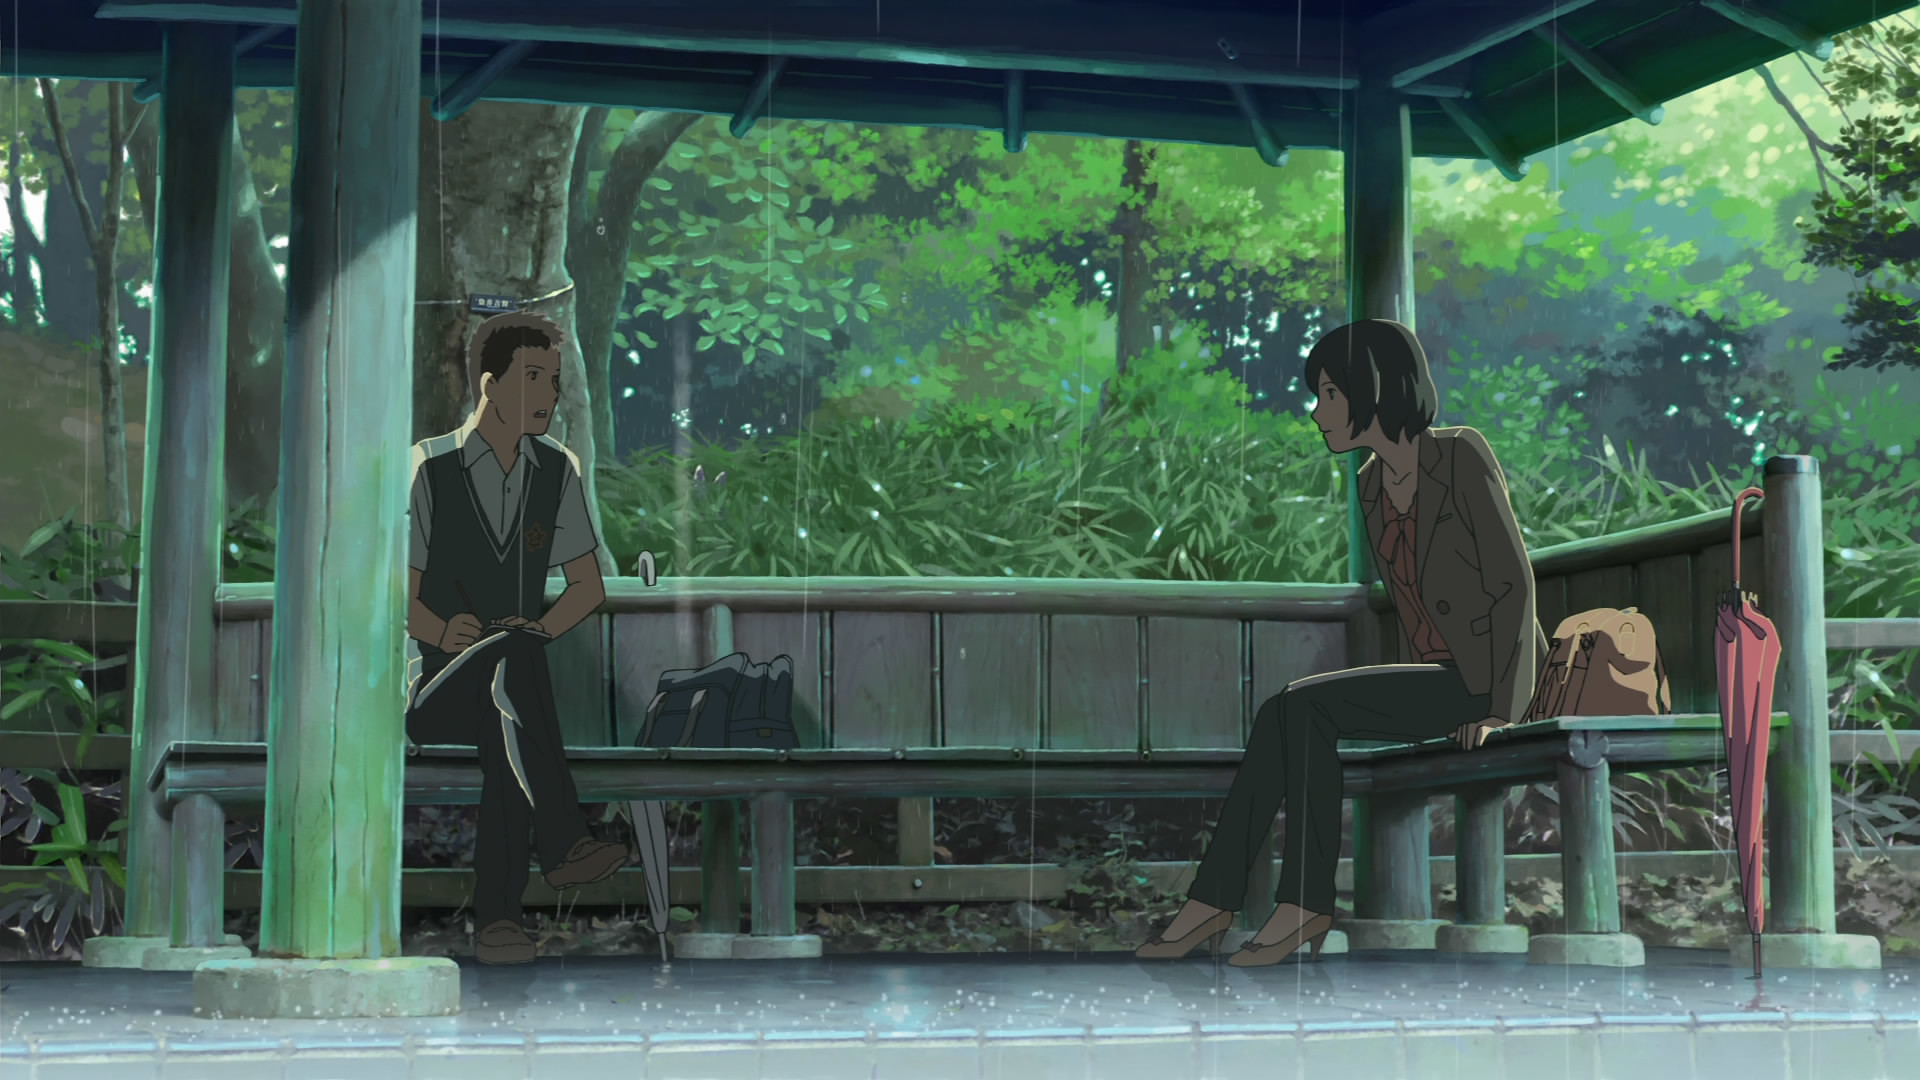 1920x1080 The Garden of Words (Makoto Shinkai) ...